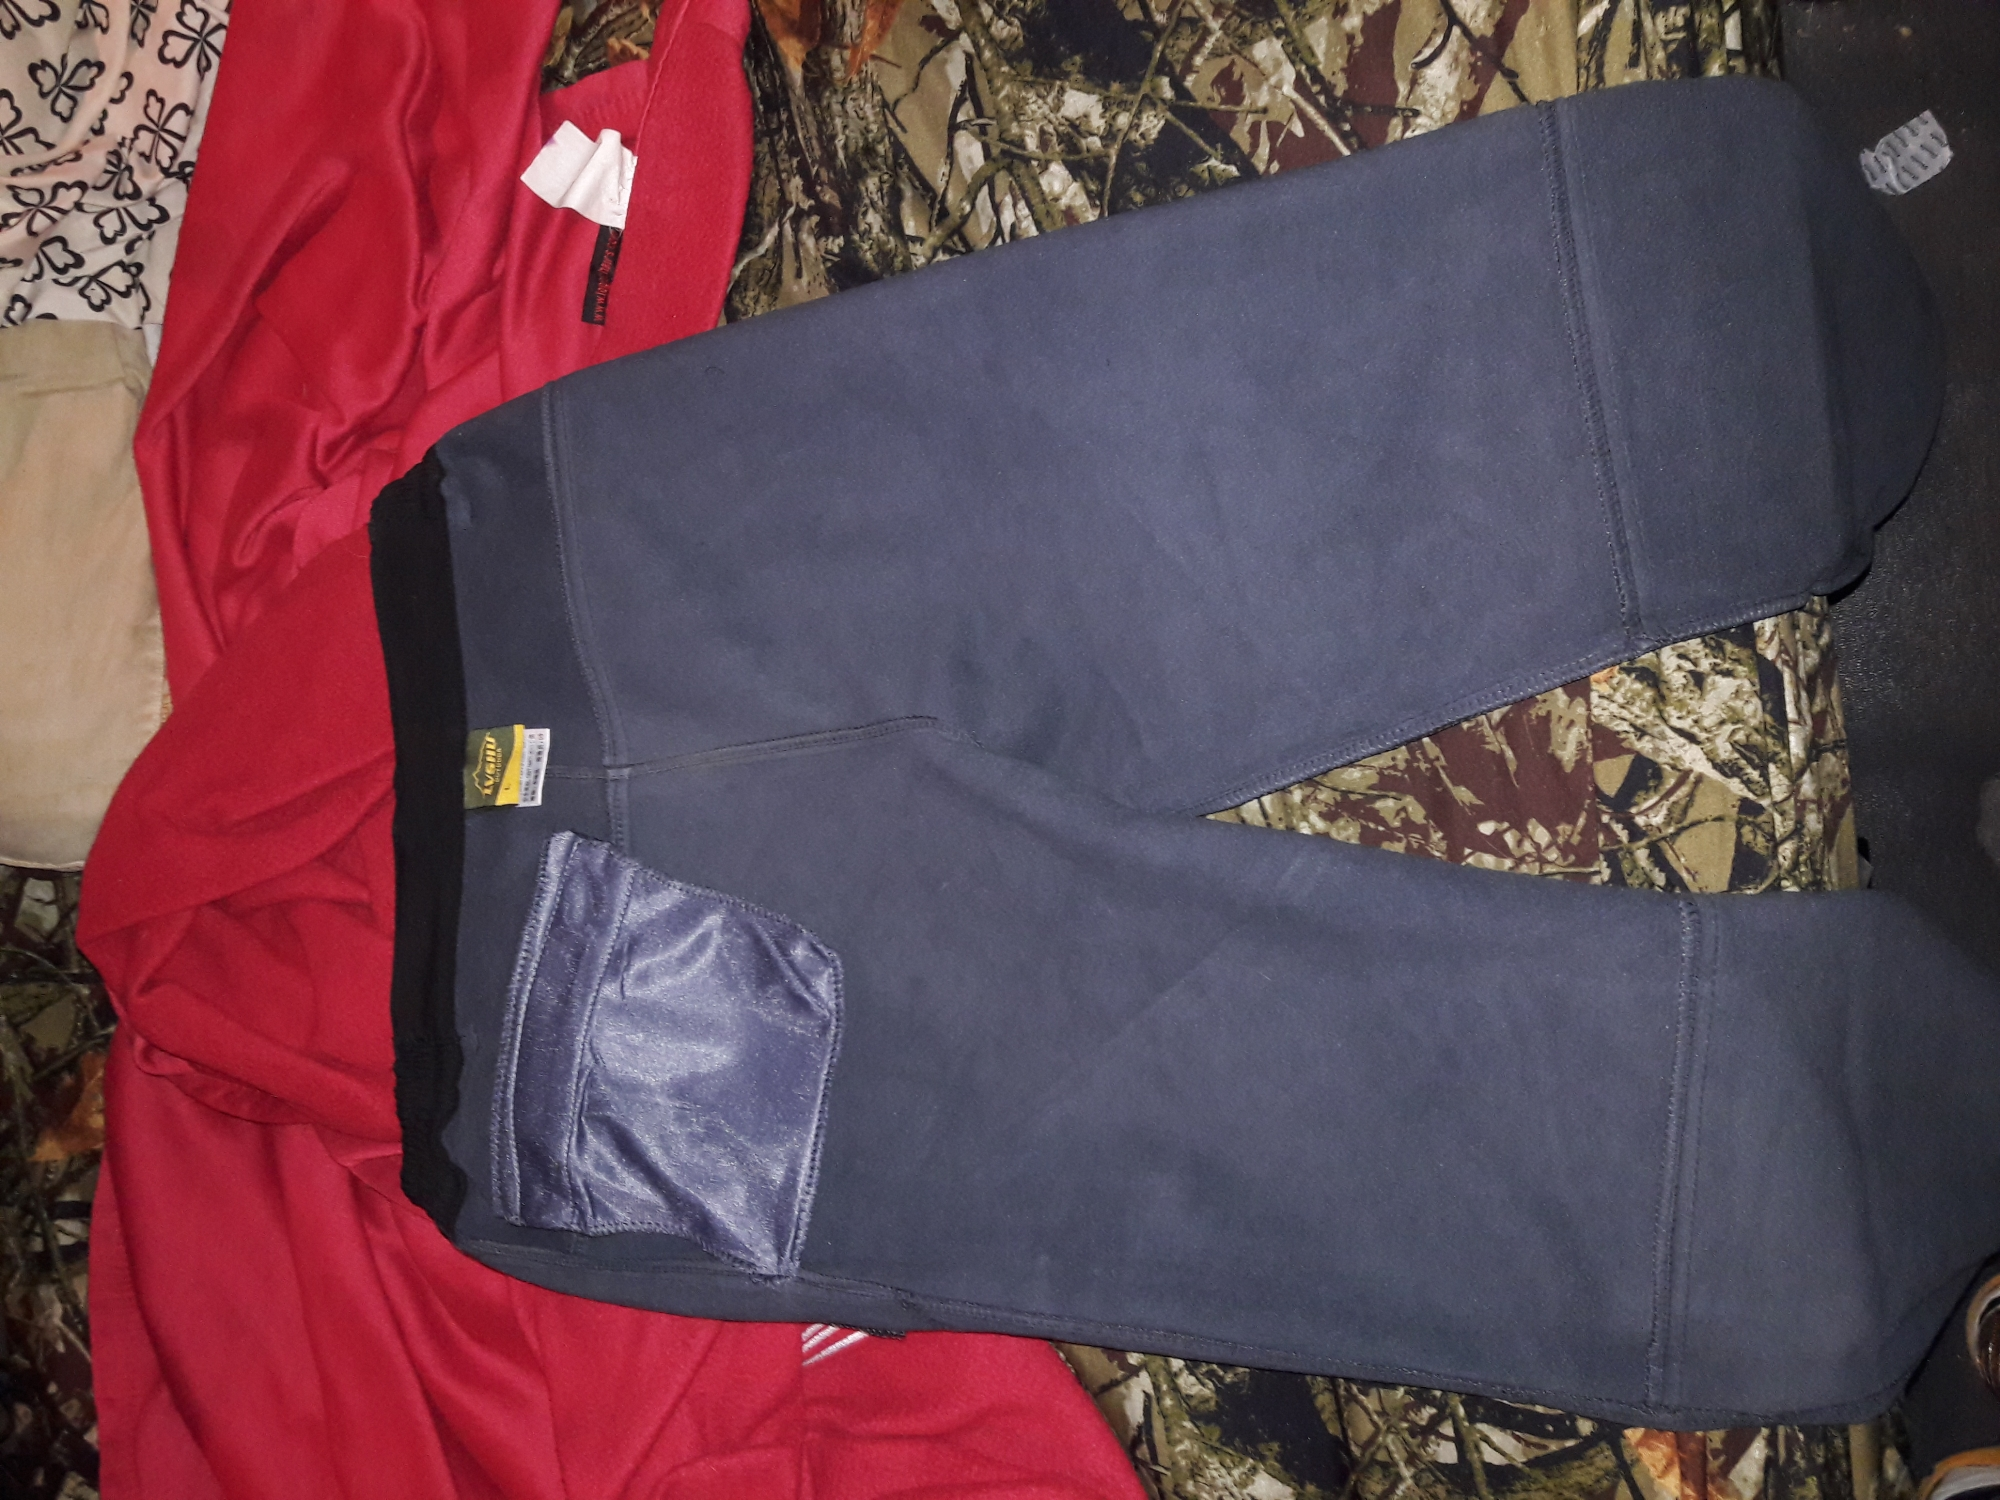 Comfortable hiking/fishing pants!